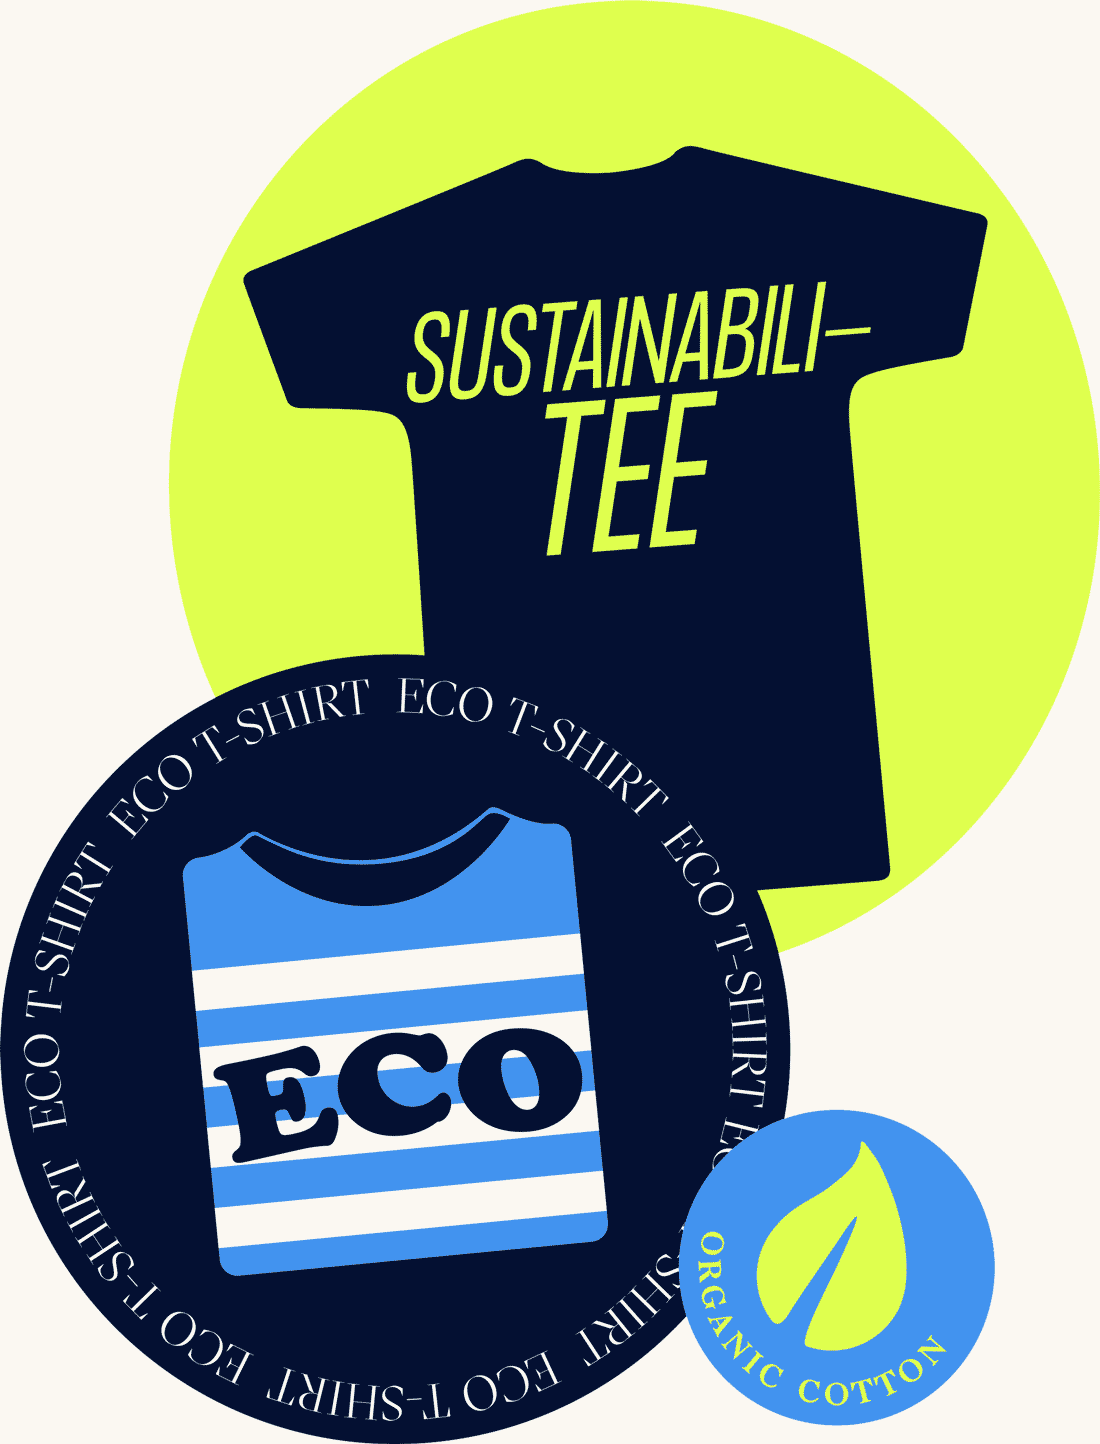 Sustainability and Eco t-shirt graphics